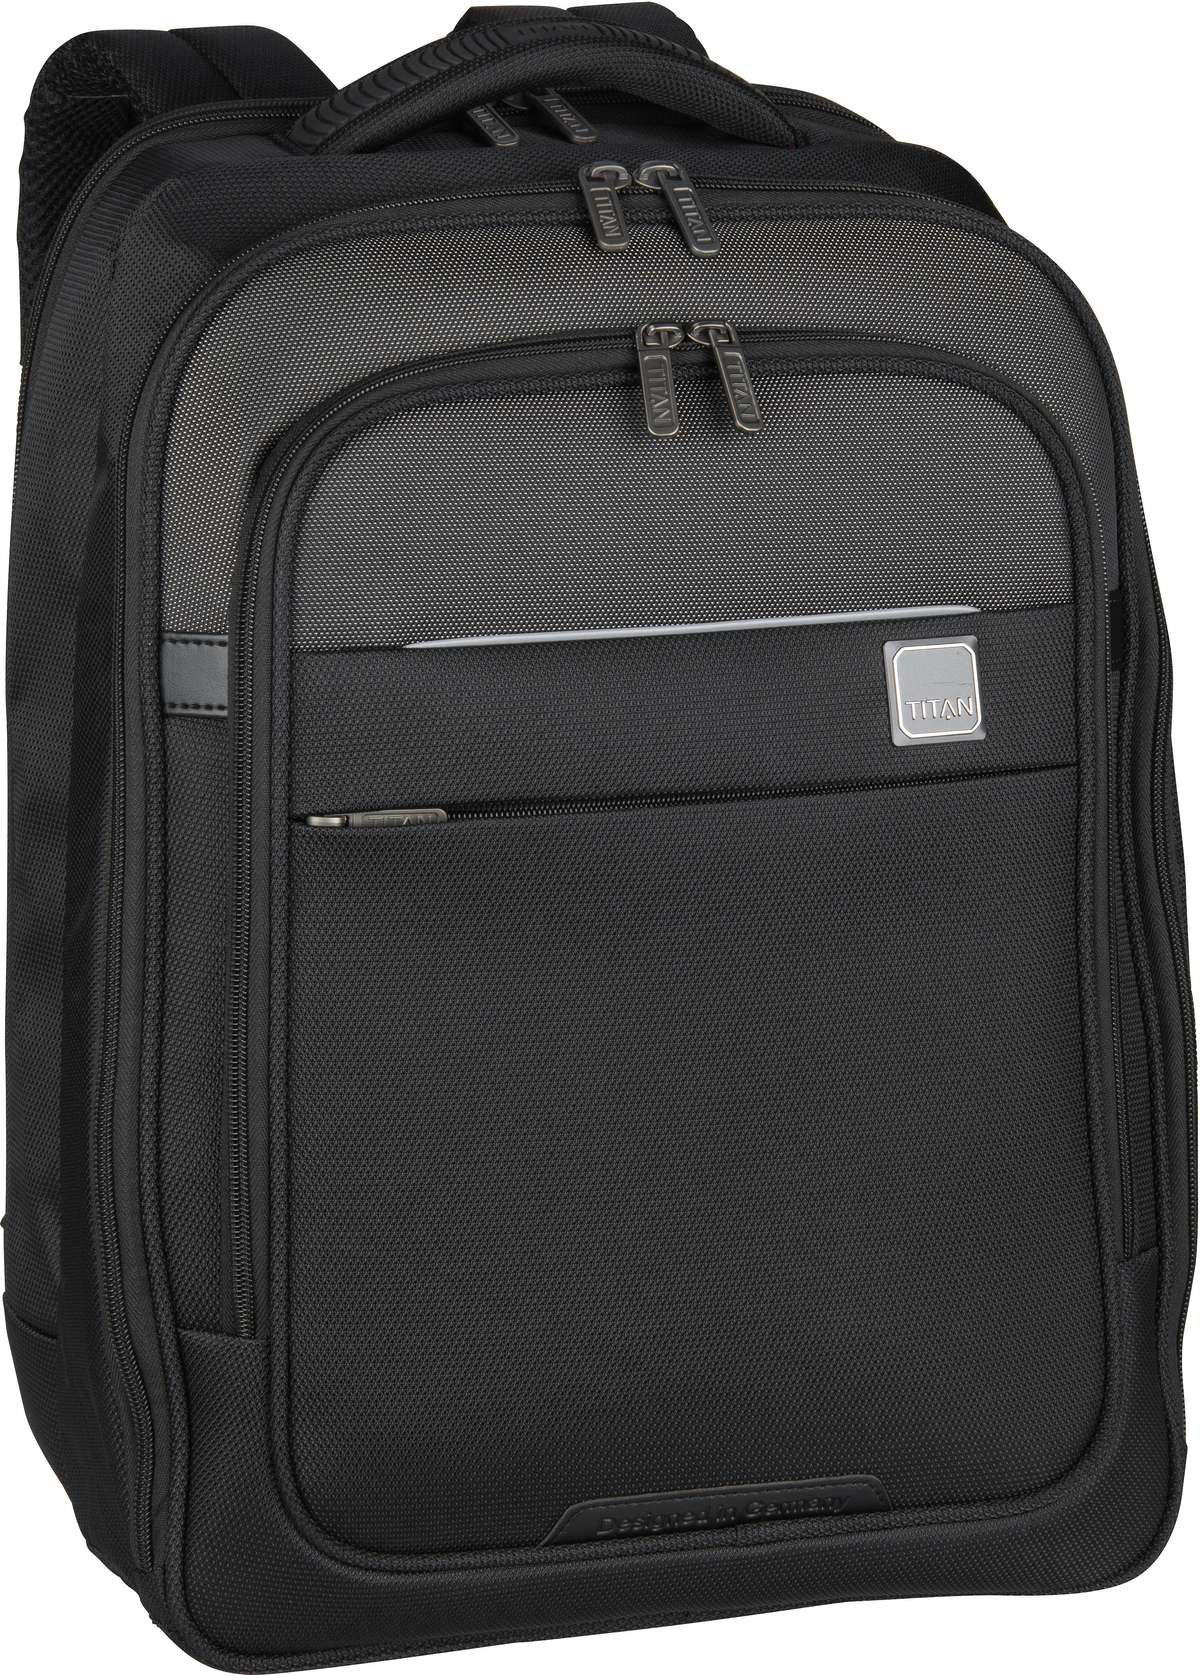 Rucksack / Daypack Prime Backpack Black (29 Liter)